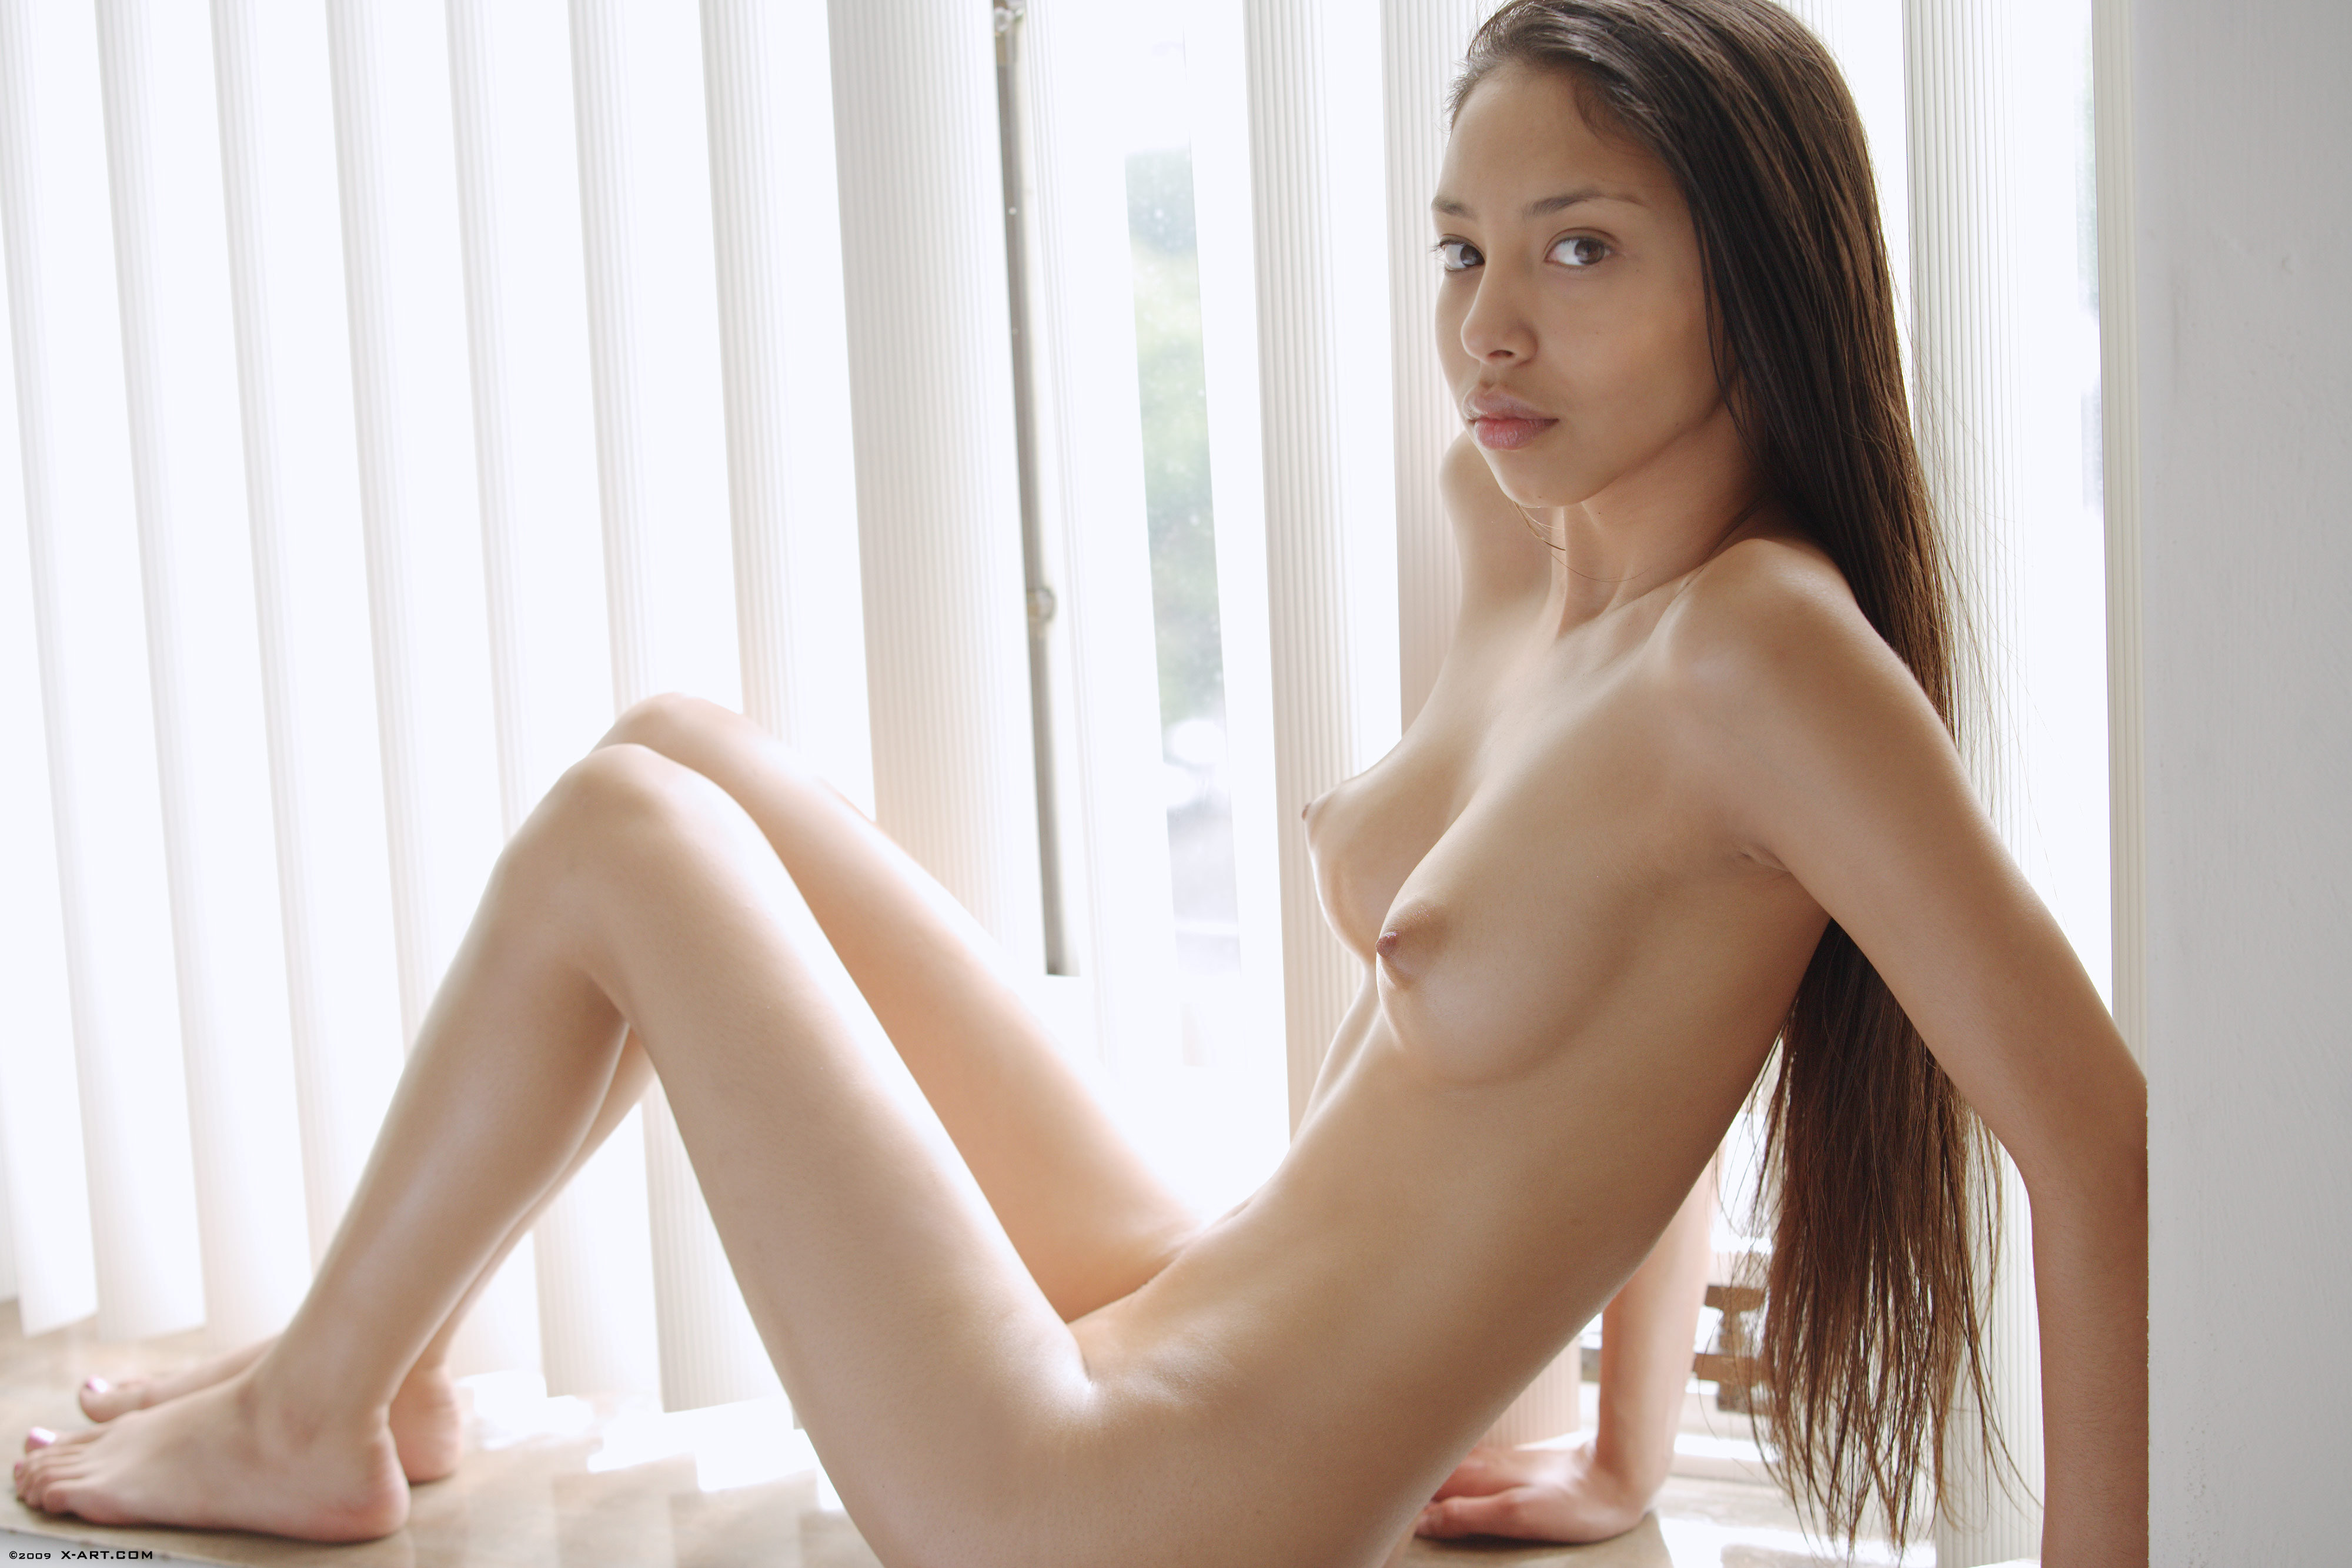 Xxx love young geiles weib